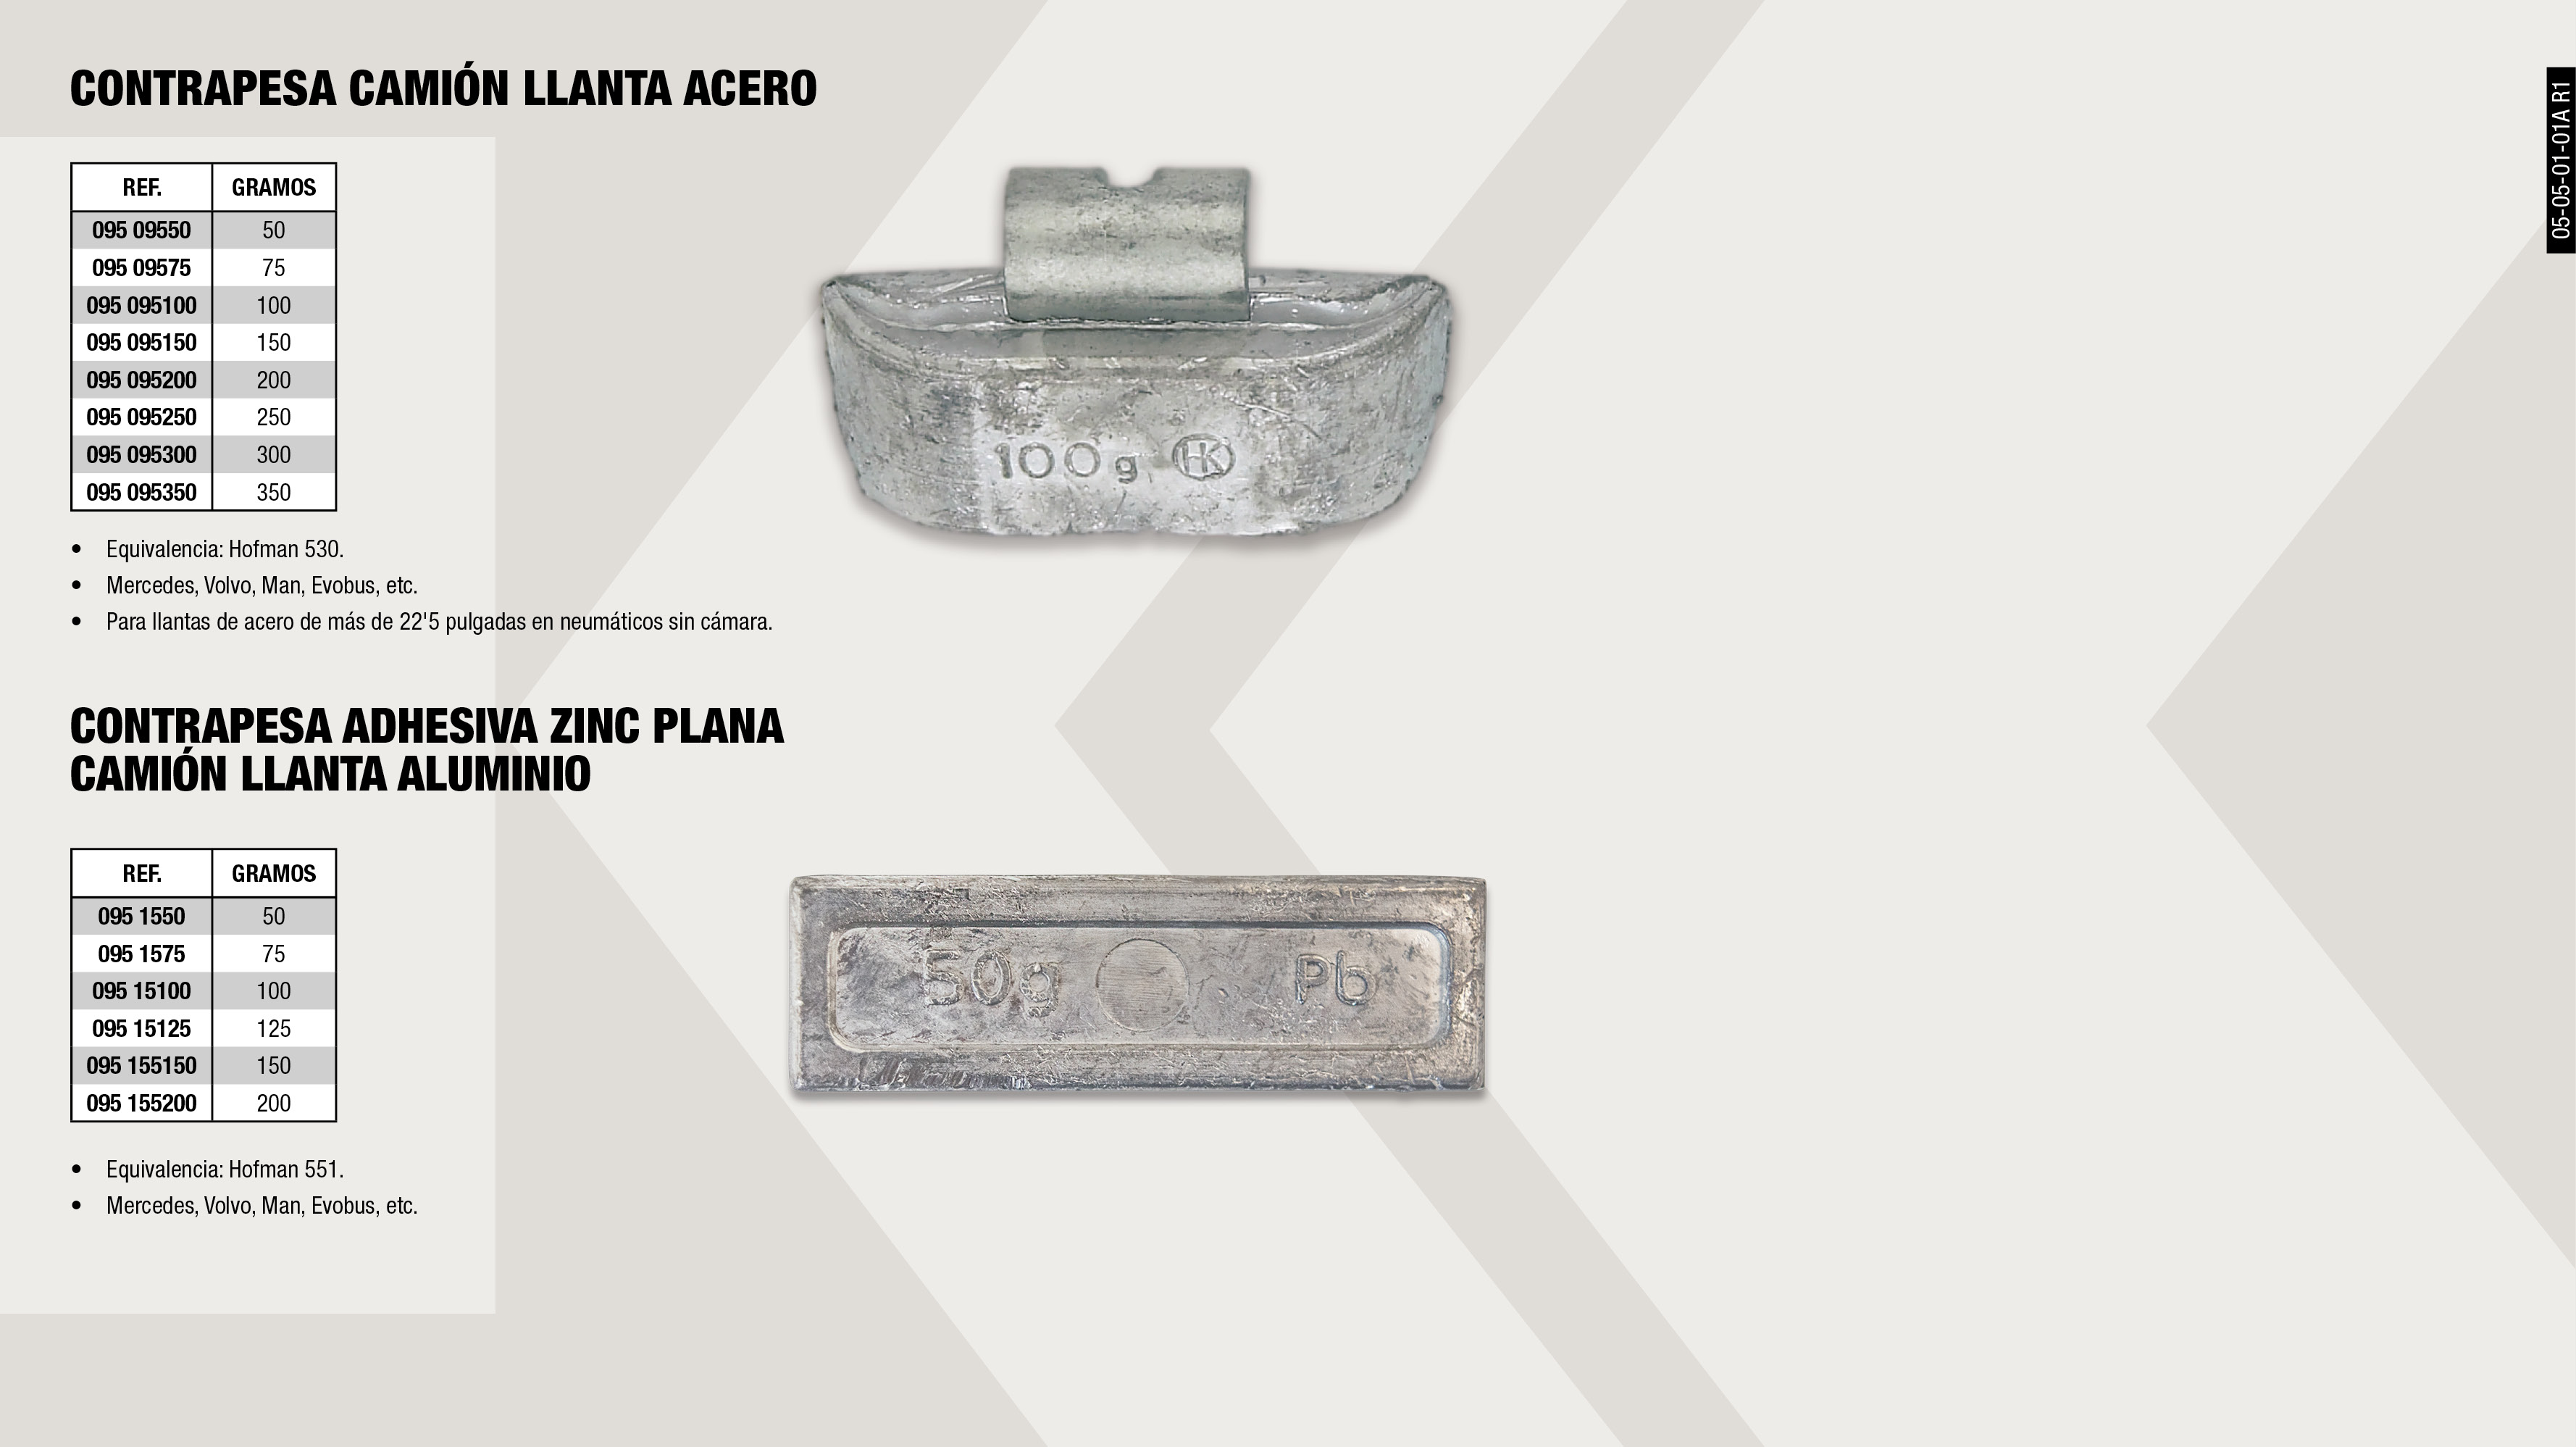 CONTRAPESAS CAMION 100 GR.                                  ,  									CONTRAPESA ADHESIVA ZINC PLANA CAMION 100GR                 ,  									CONTRAPESAS CAMION 250 GR.                                  ,  									CONTRAPESA ADHESIVA ZINC PLANA CAMION 150GR                 ,  									CONTRAPESA ADHESIVA ZINC PLANA CAMION 50GR                  ,  									CONTRAPESAS CAMION 150 GR.                                  ,  									CONTRAPESAS CAMION 50 GR.                                   ,  									CONTRAPESA ADHESIVA ZINC PLANA CAMION 125GR                 ,  									CONTRAPESAS CAMION 75 GR.                                   ,  									CONTRAPESAS CAMION 350 GR.                                  ,  									CONTRAPESAS CAMION 200 GR.                                  ,  									CONTRAPESAS CAMION 300 GR.                                  ,  									CONTRAPESA ADHESIVA ZINC PLANA CAMION 200GR                 ,  									CONTRAPESA ADHESIVA ZINC PLANA CAMION 75GR                  ,